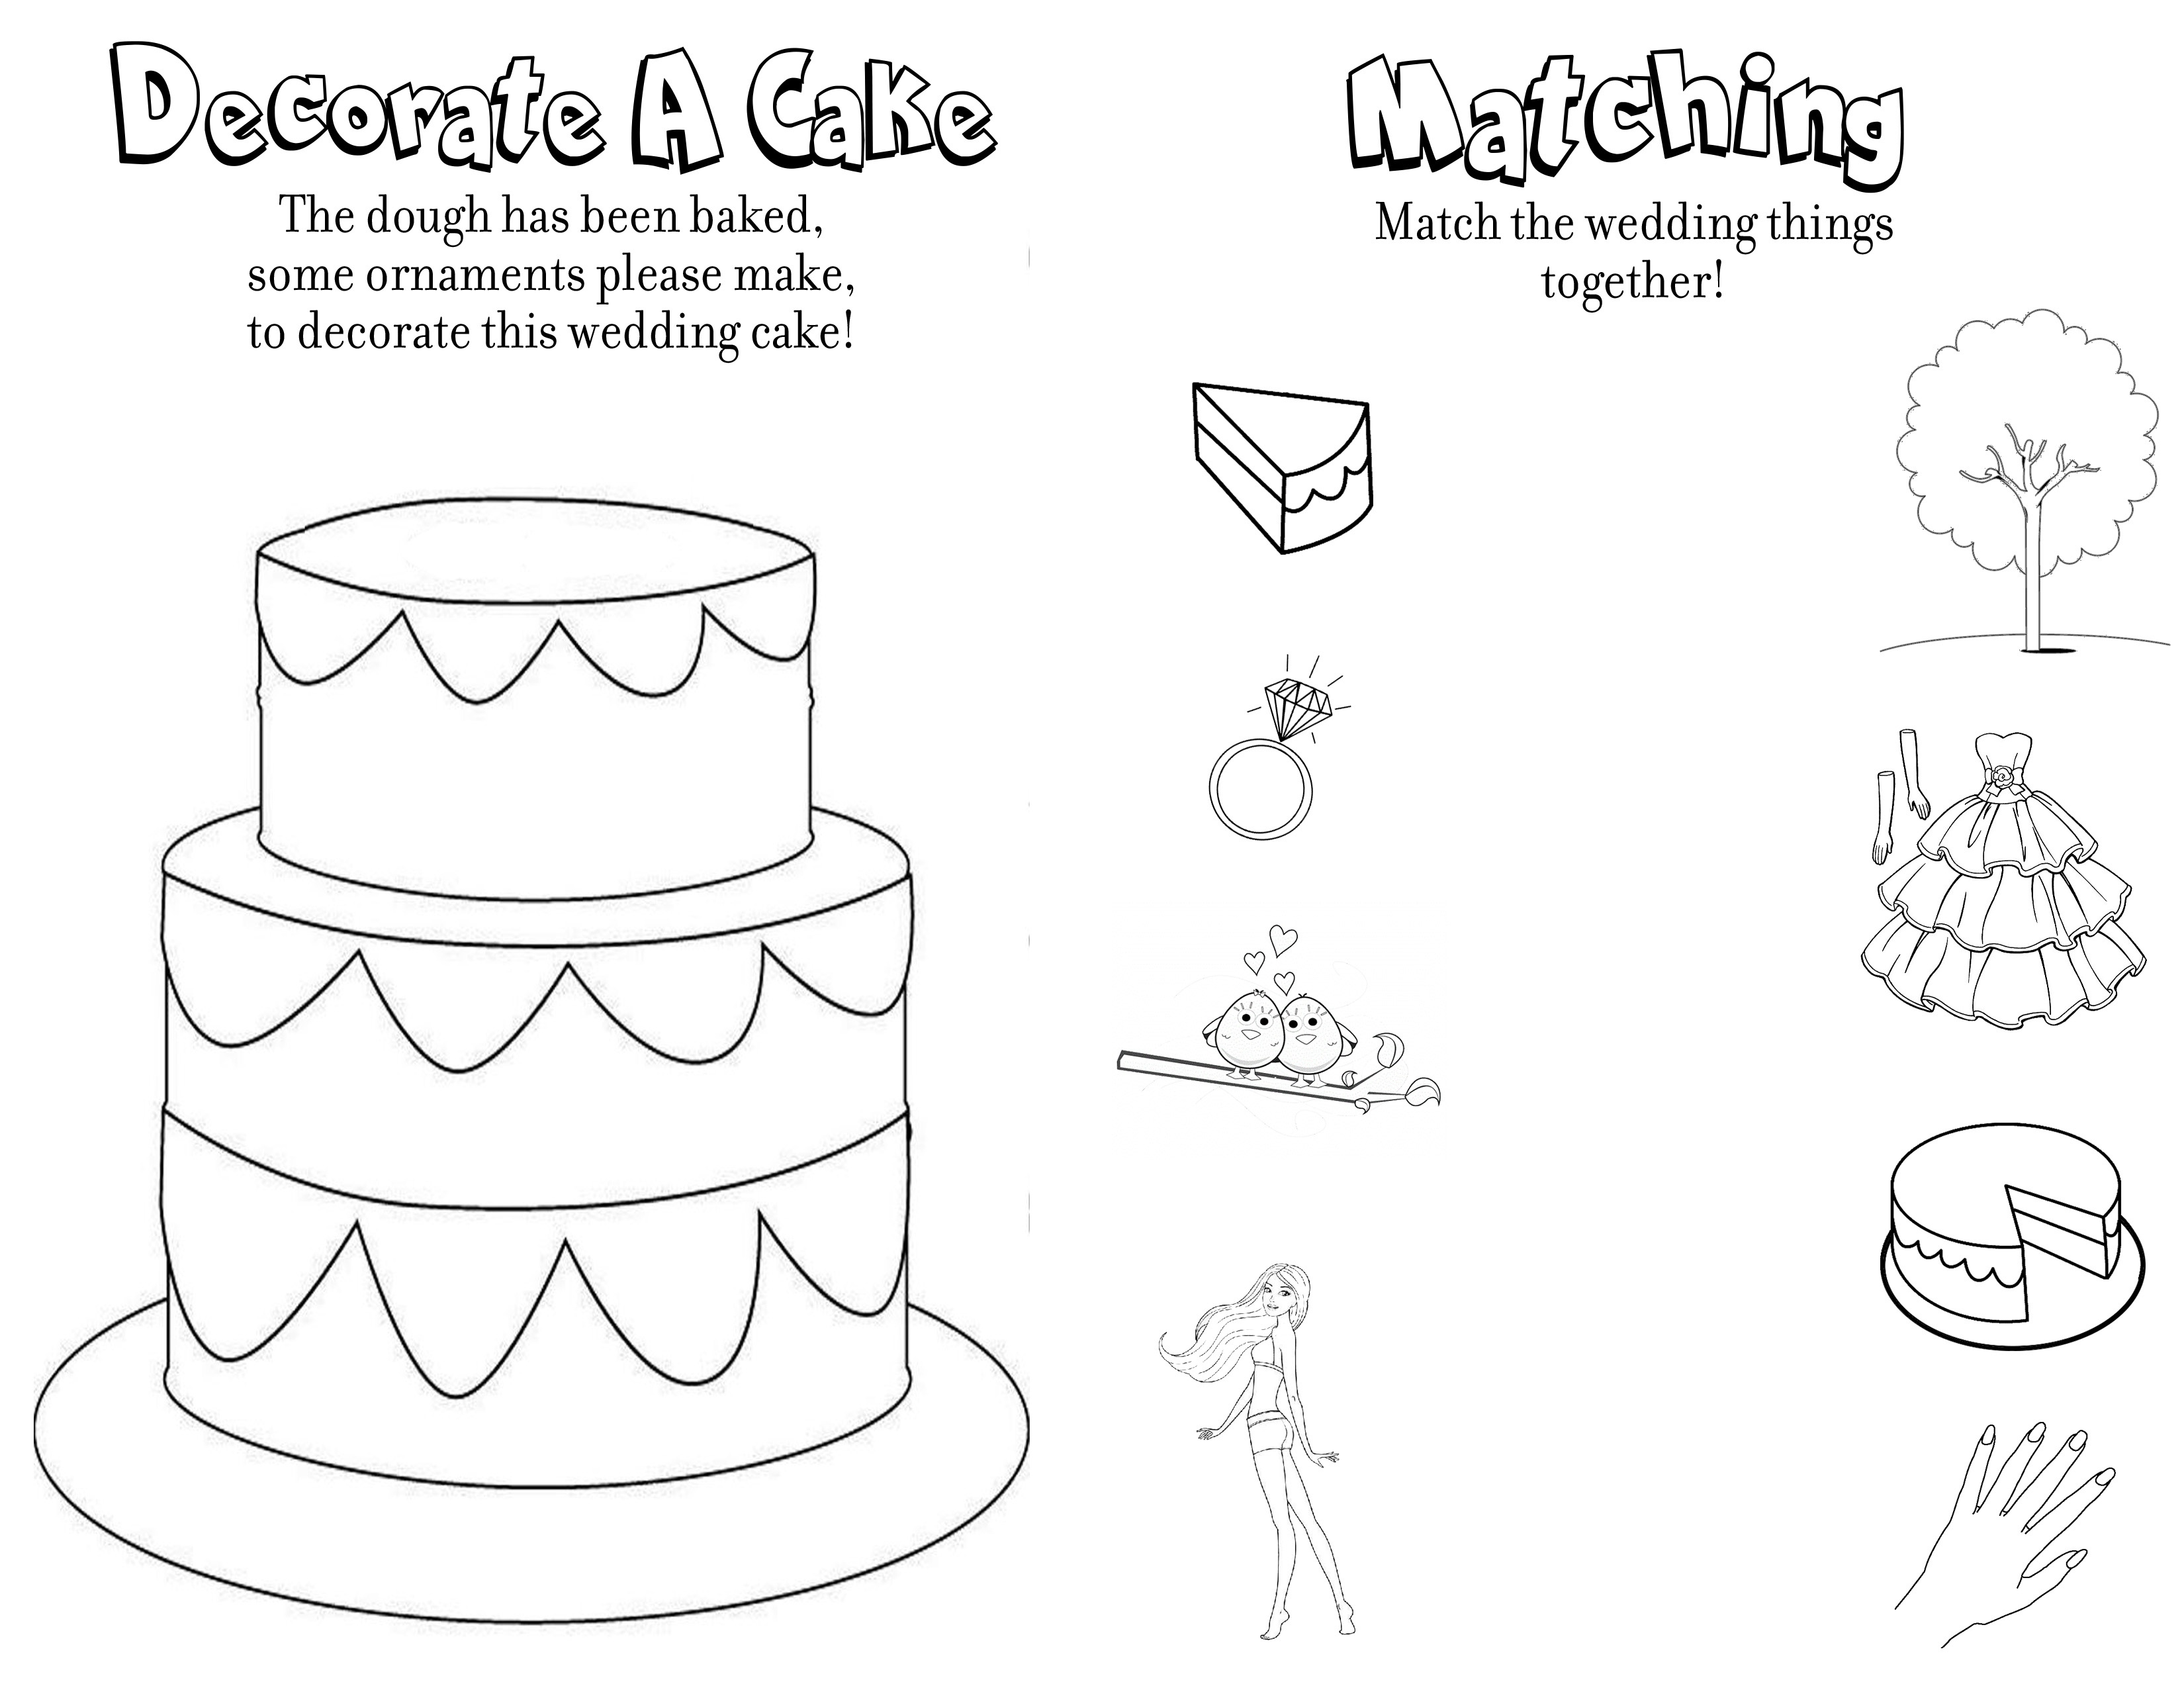 Wedding Coloring And Activity Book - Free Printable Personalized Wedding Coloring Book